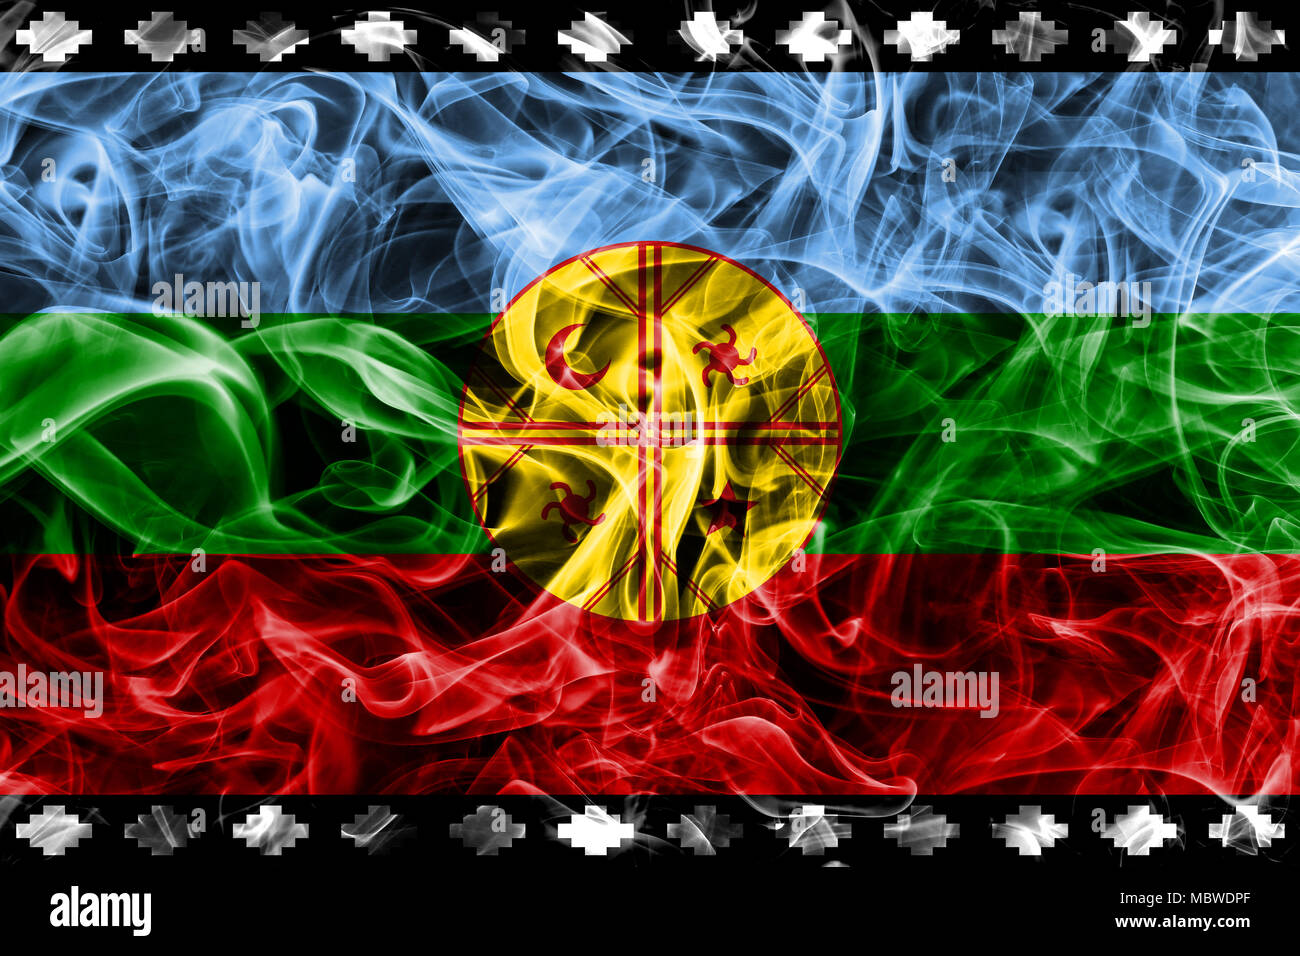 Mapuche smoke flag, Chile and Argentina dependent territory flag - Stock Image